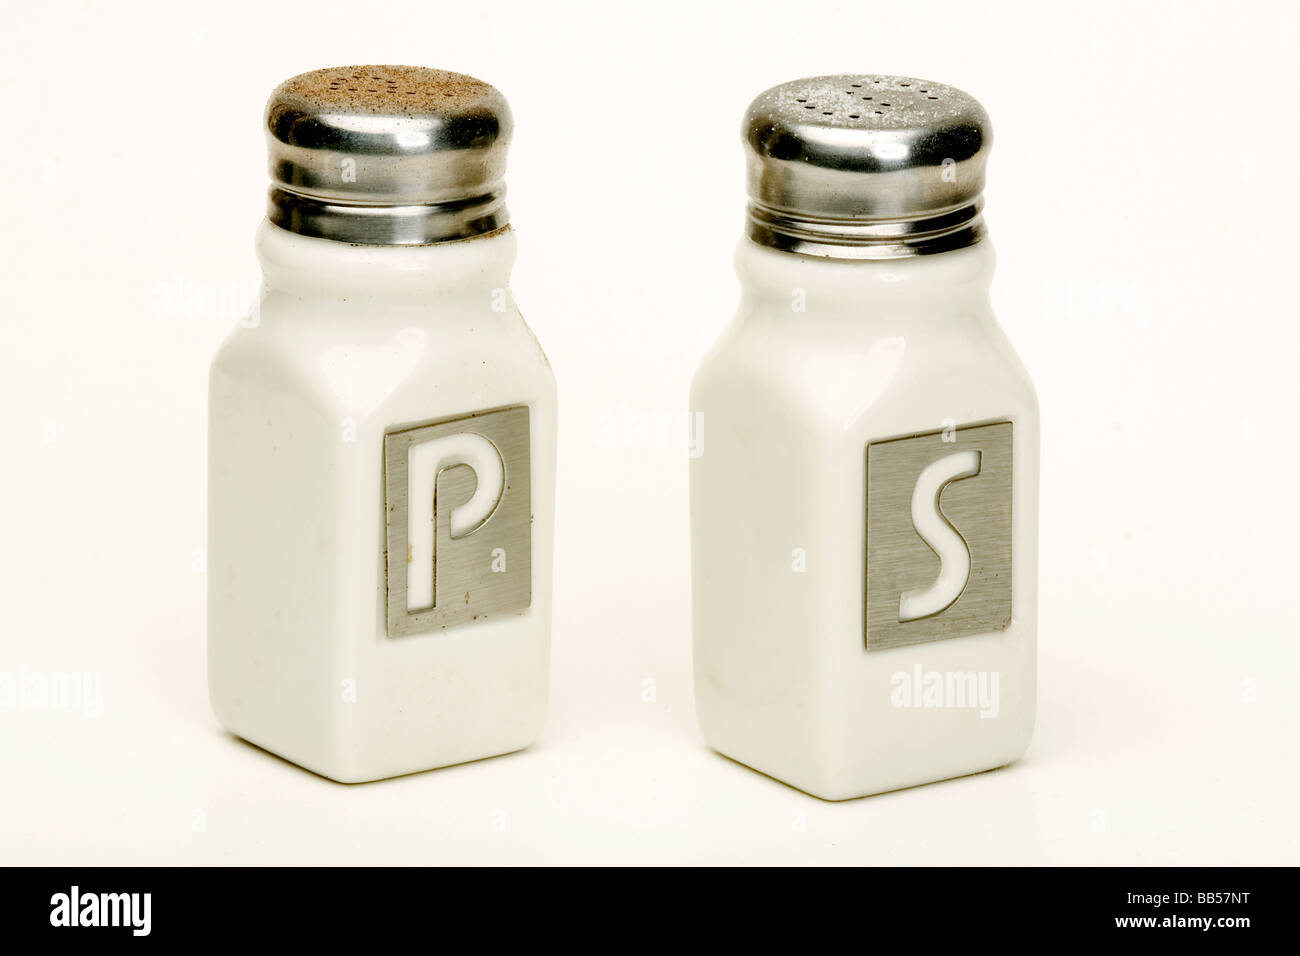 Salt and pepper shakers on white background - Stock Image